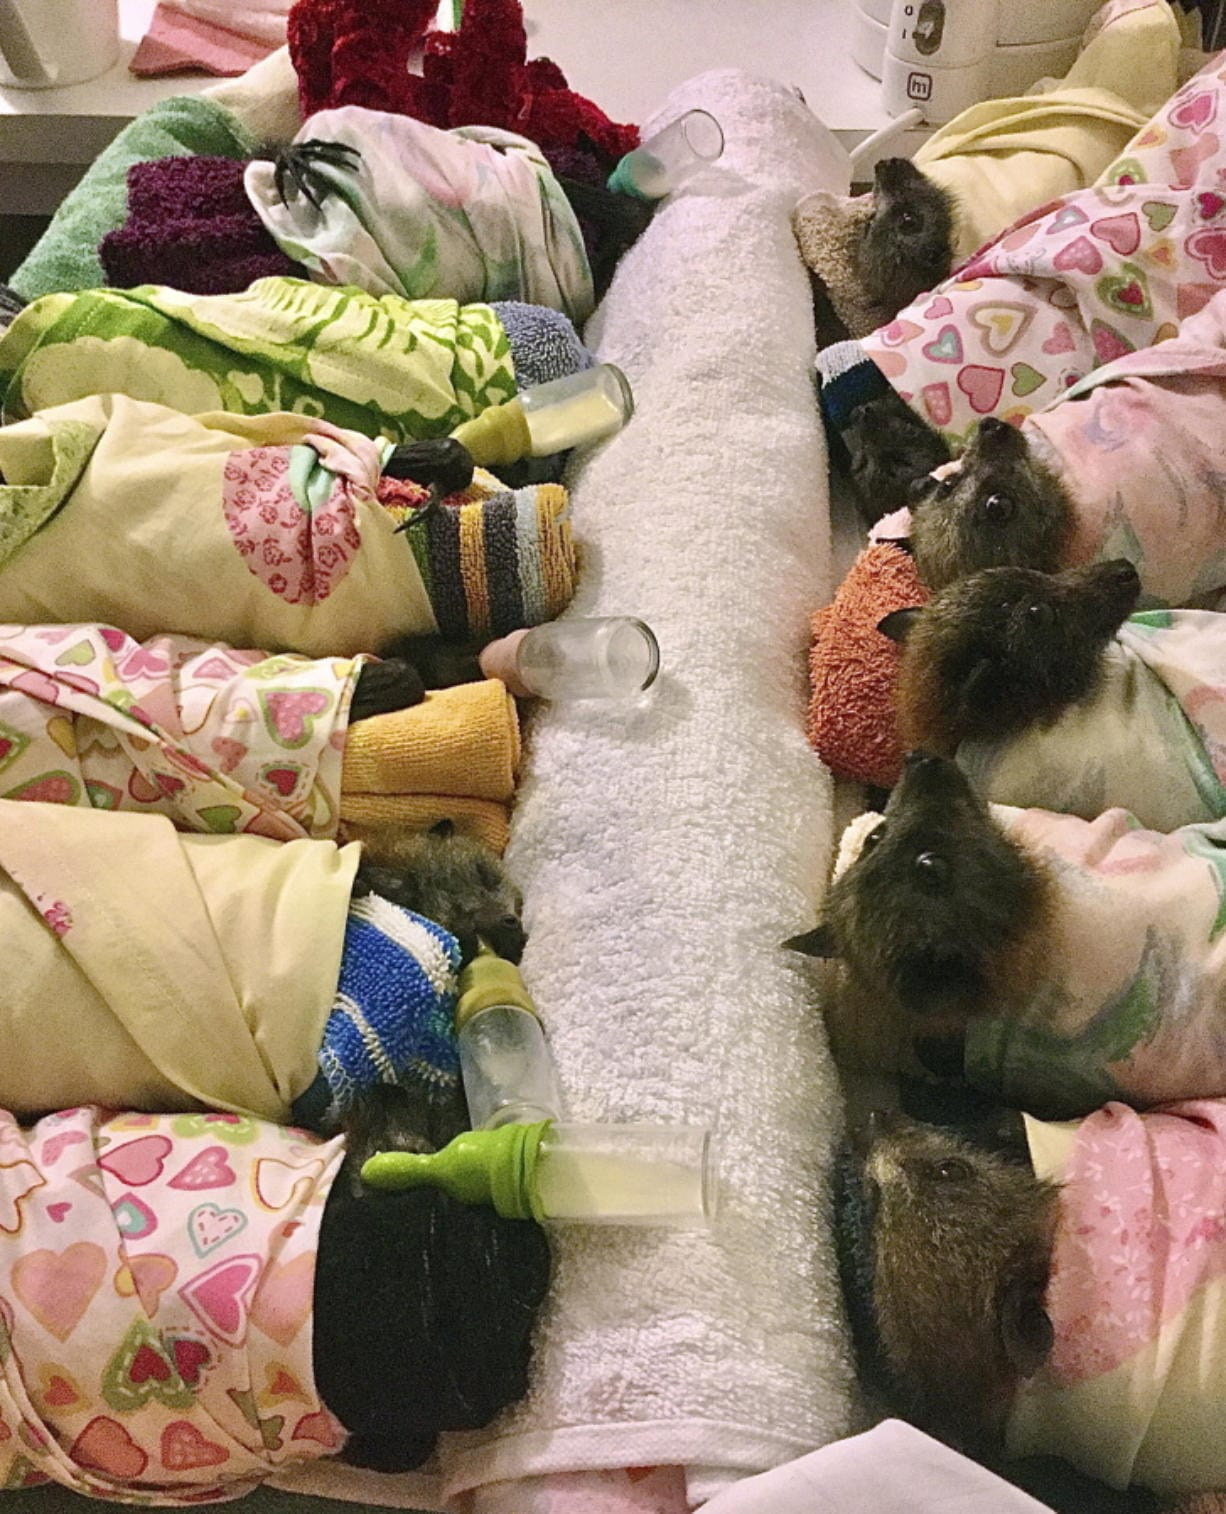 Grey-headed flying fox bats are swaddled in flannel wraps, similar to those being made by thousands of crafters worldwide, at the home of volunteer Jackie Maisey in Uralla, Australia, on Jan. 8. (jackie maisey)